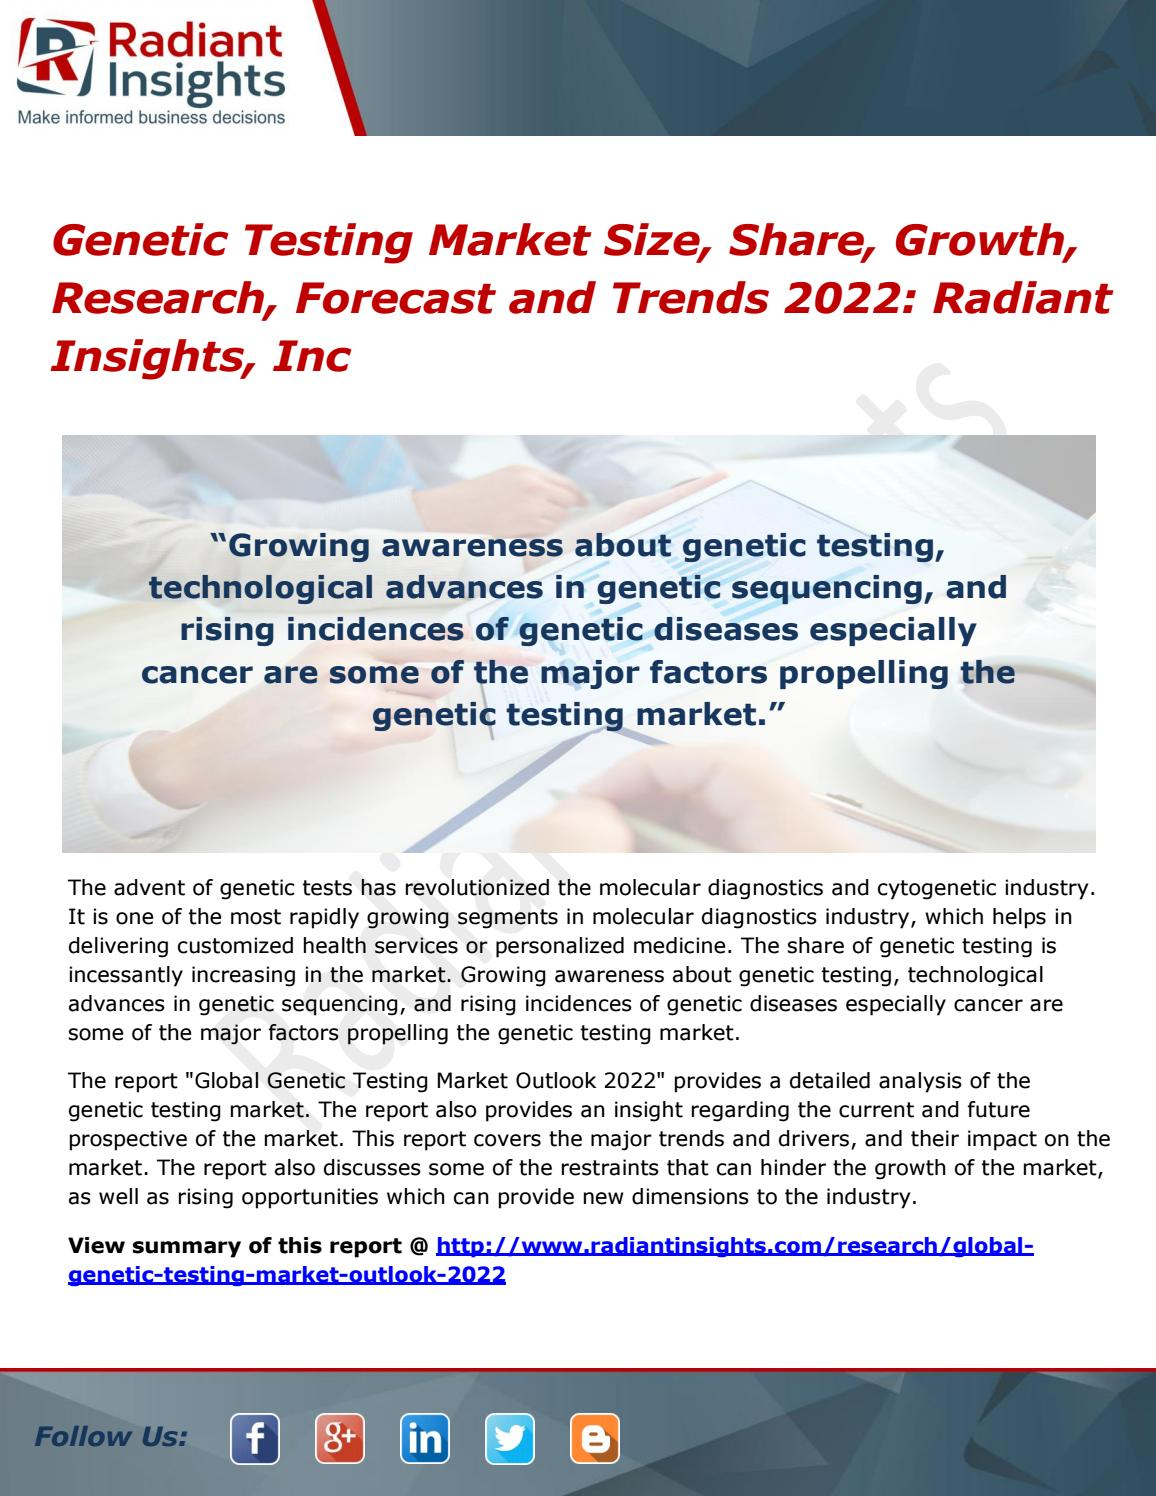 Genetic testing market growth, research, forecast and trends